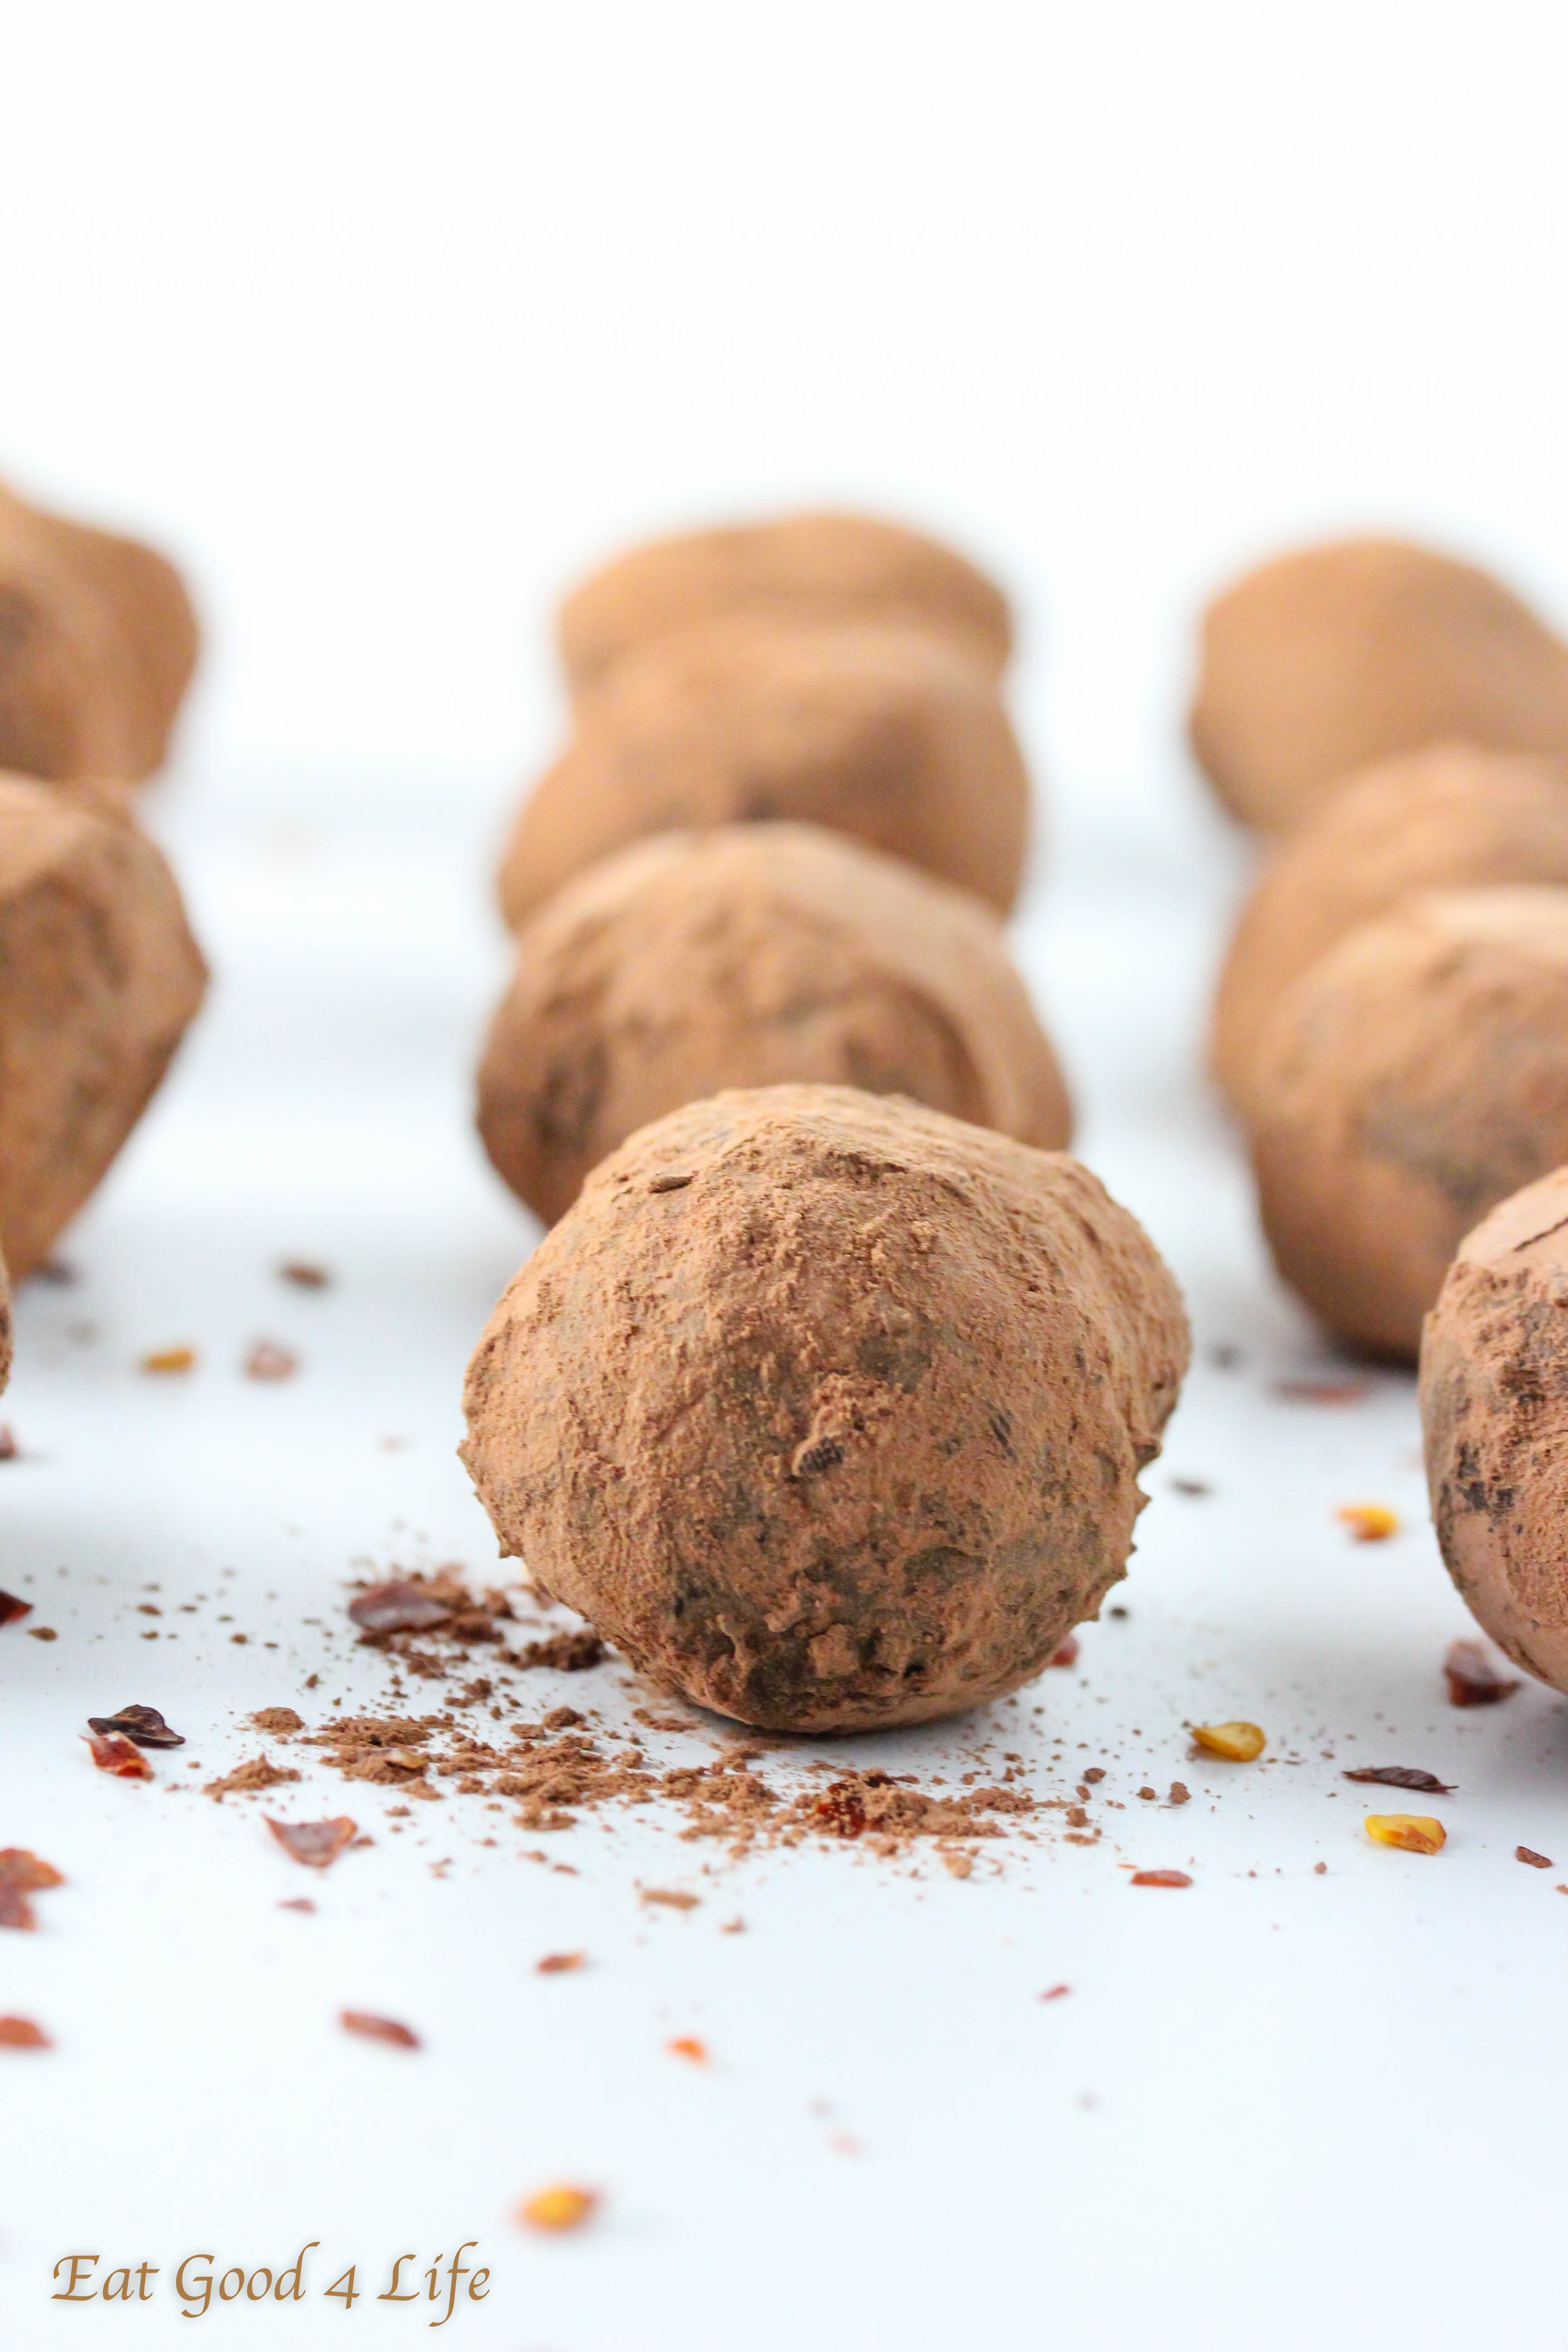 chili chocolate truffles are truly the bomb the mixture of chocolate ...